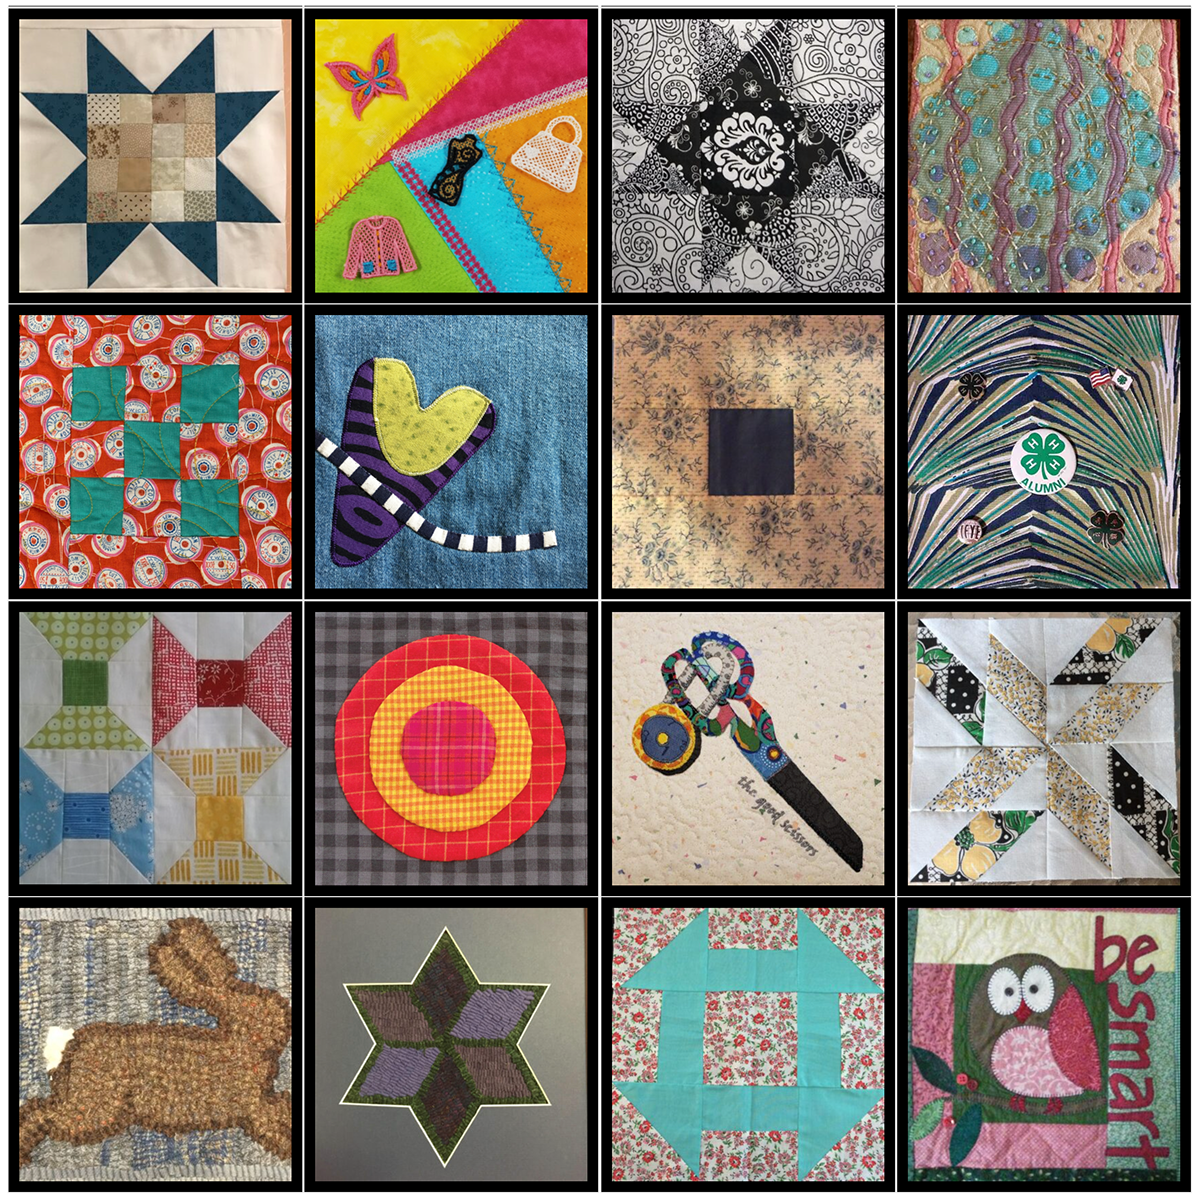 Tiled collage with 16 photos of quilt pieces